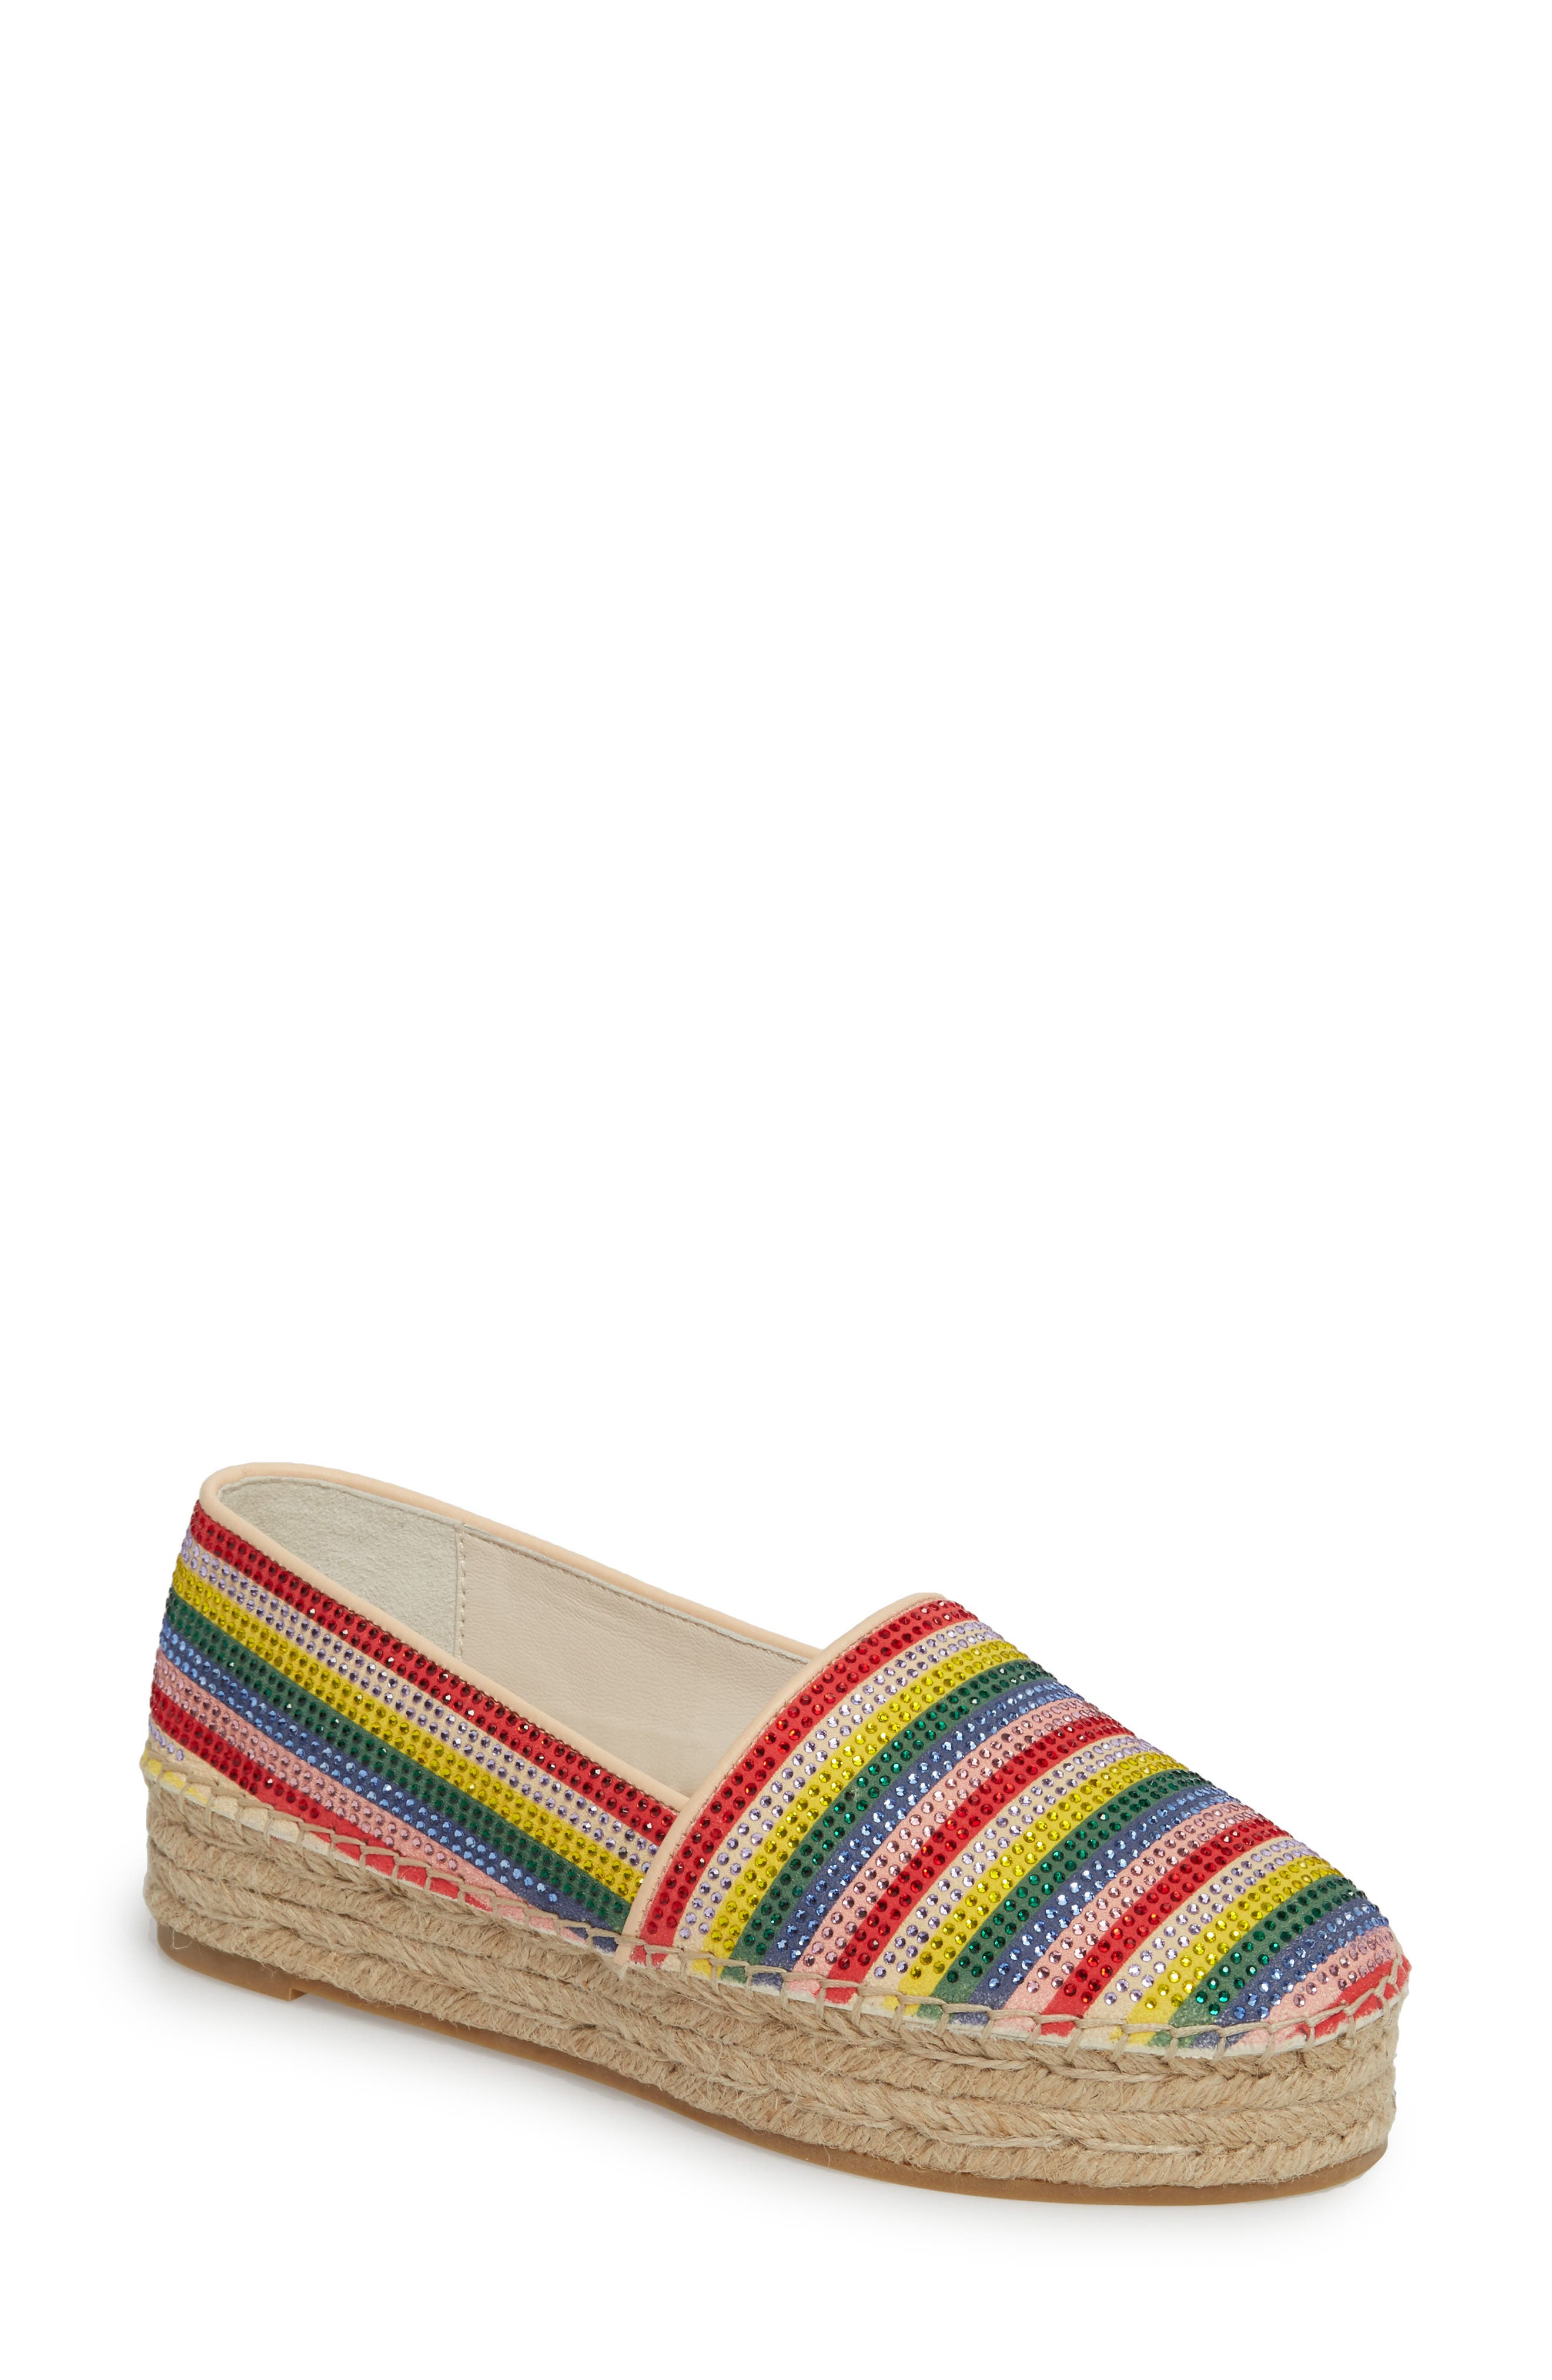 Alice + Olivia Dalyn Crystal Embellished Espadrille (Women)